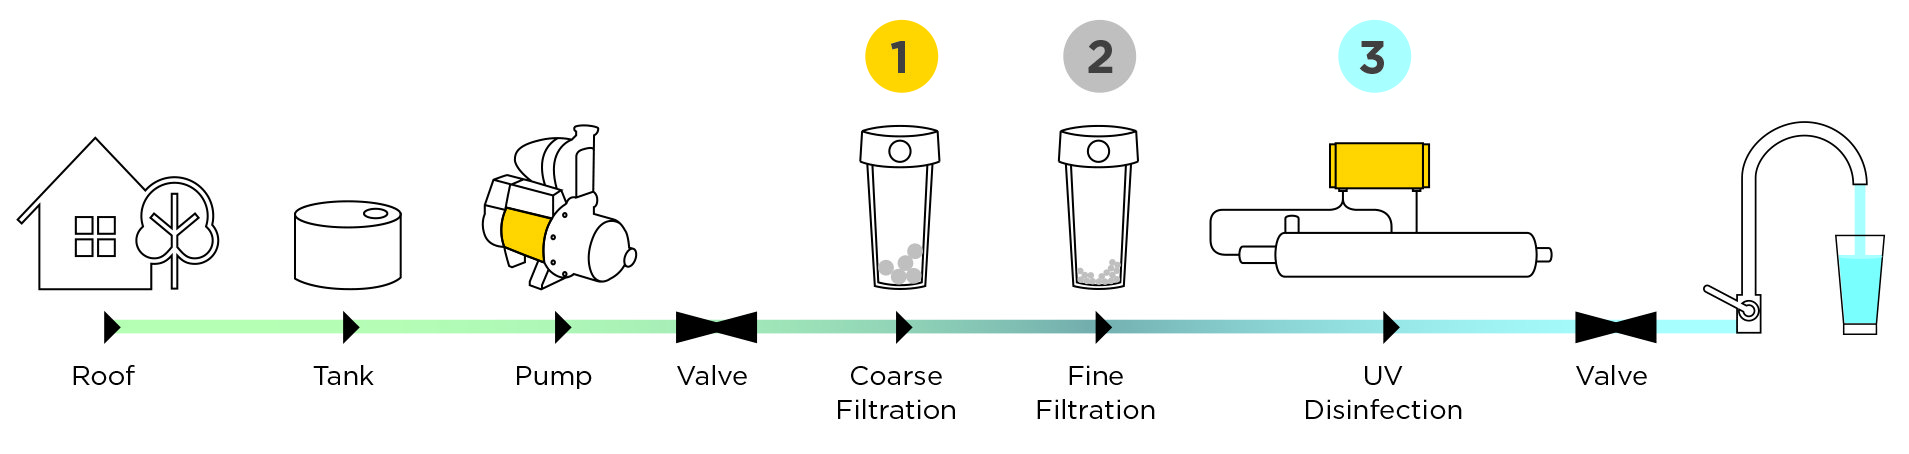 3 stages of filtration (Coarse, Fine, UV/Liquid Disinfection)